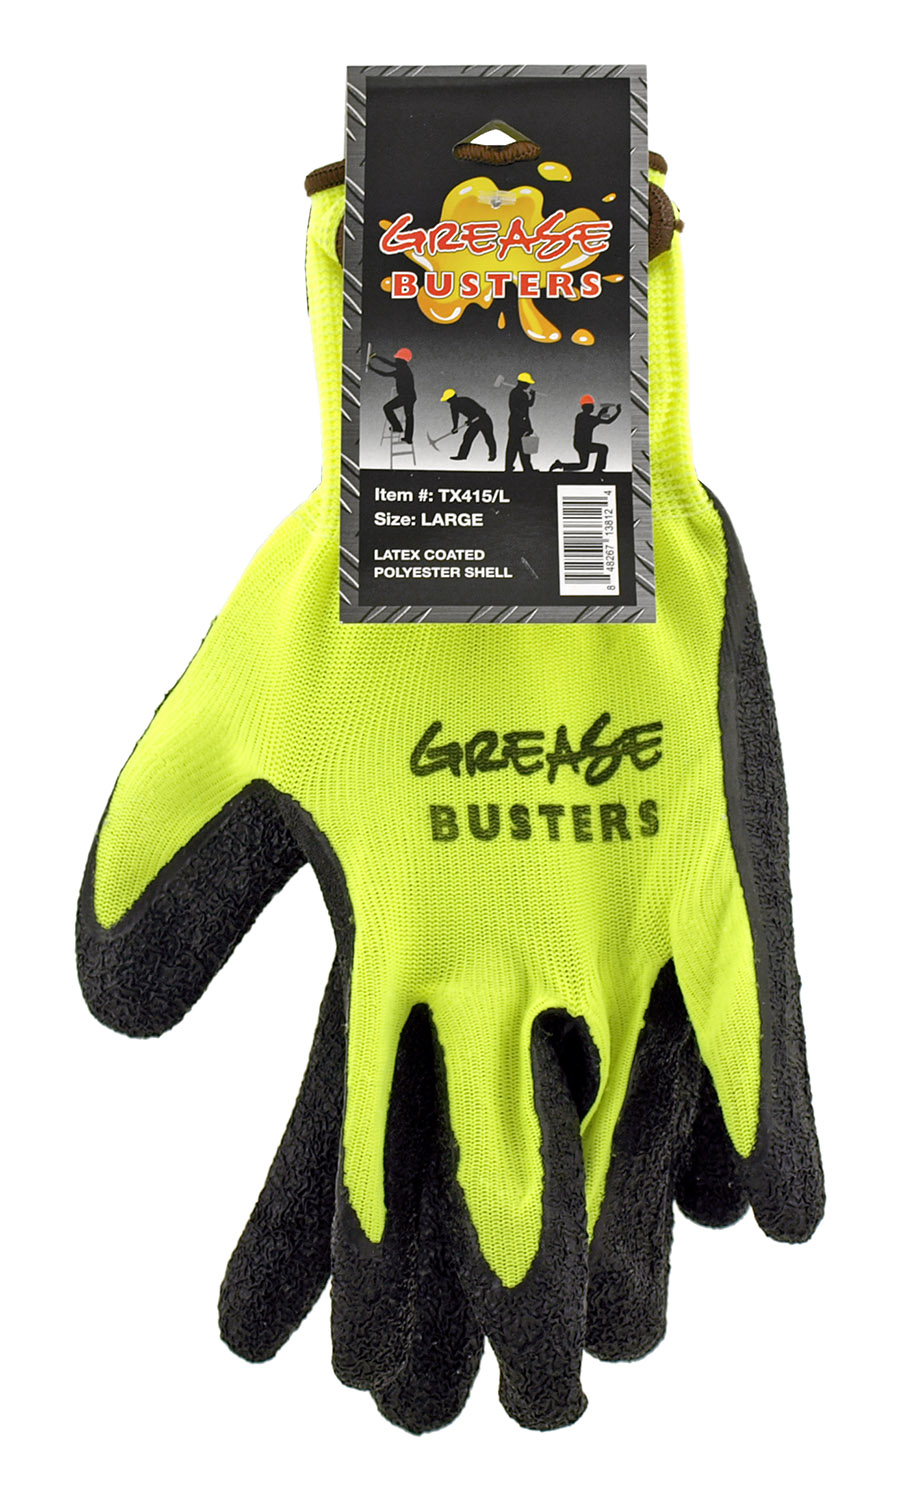 1 Pair of Grease Busters Latex Coated Polyester Work Gloves - Large